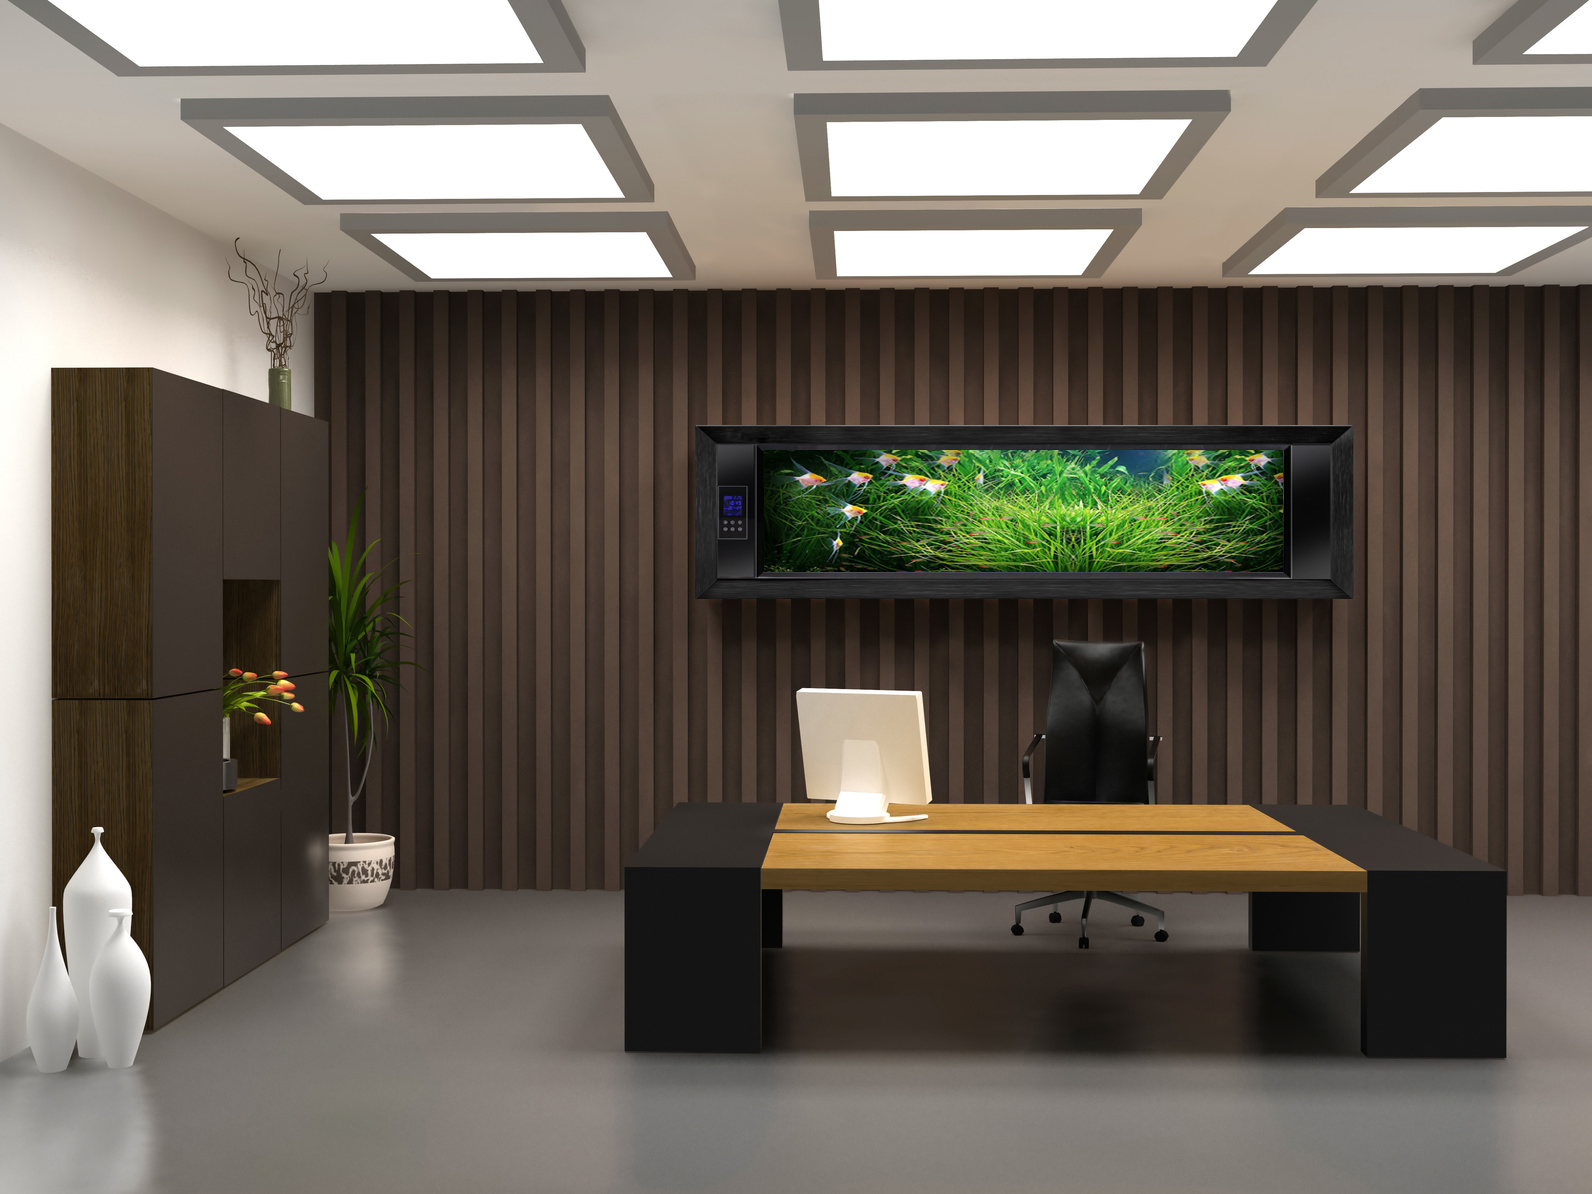 Elegant ceo office design bellisima Office designer online